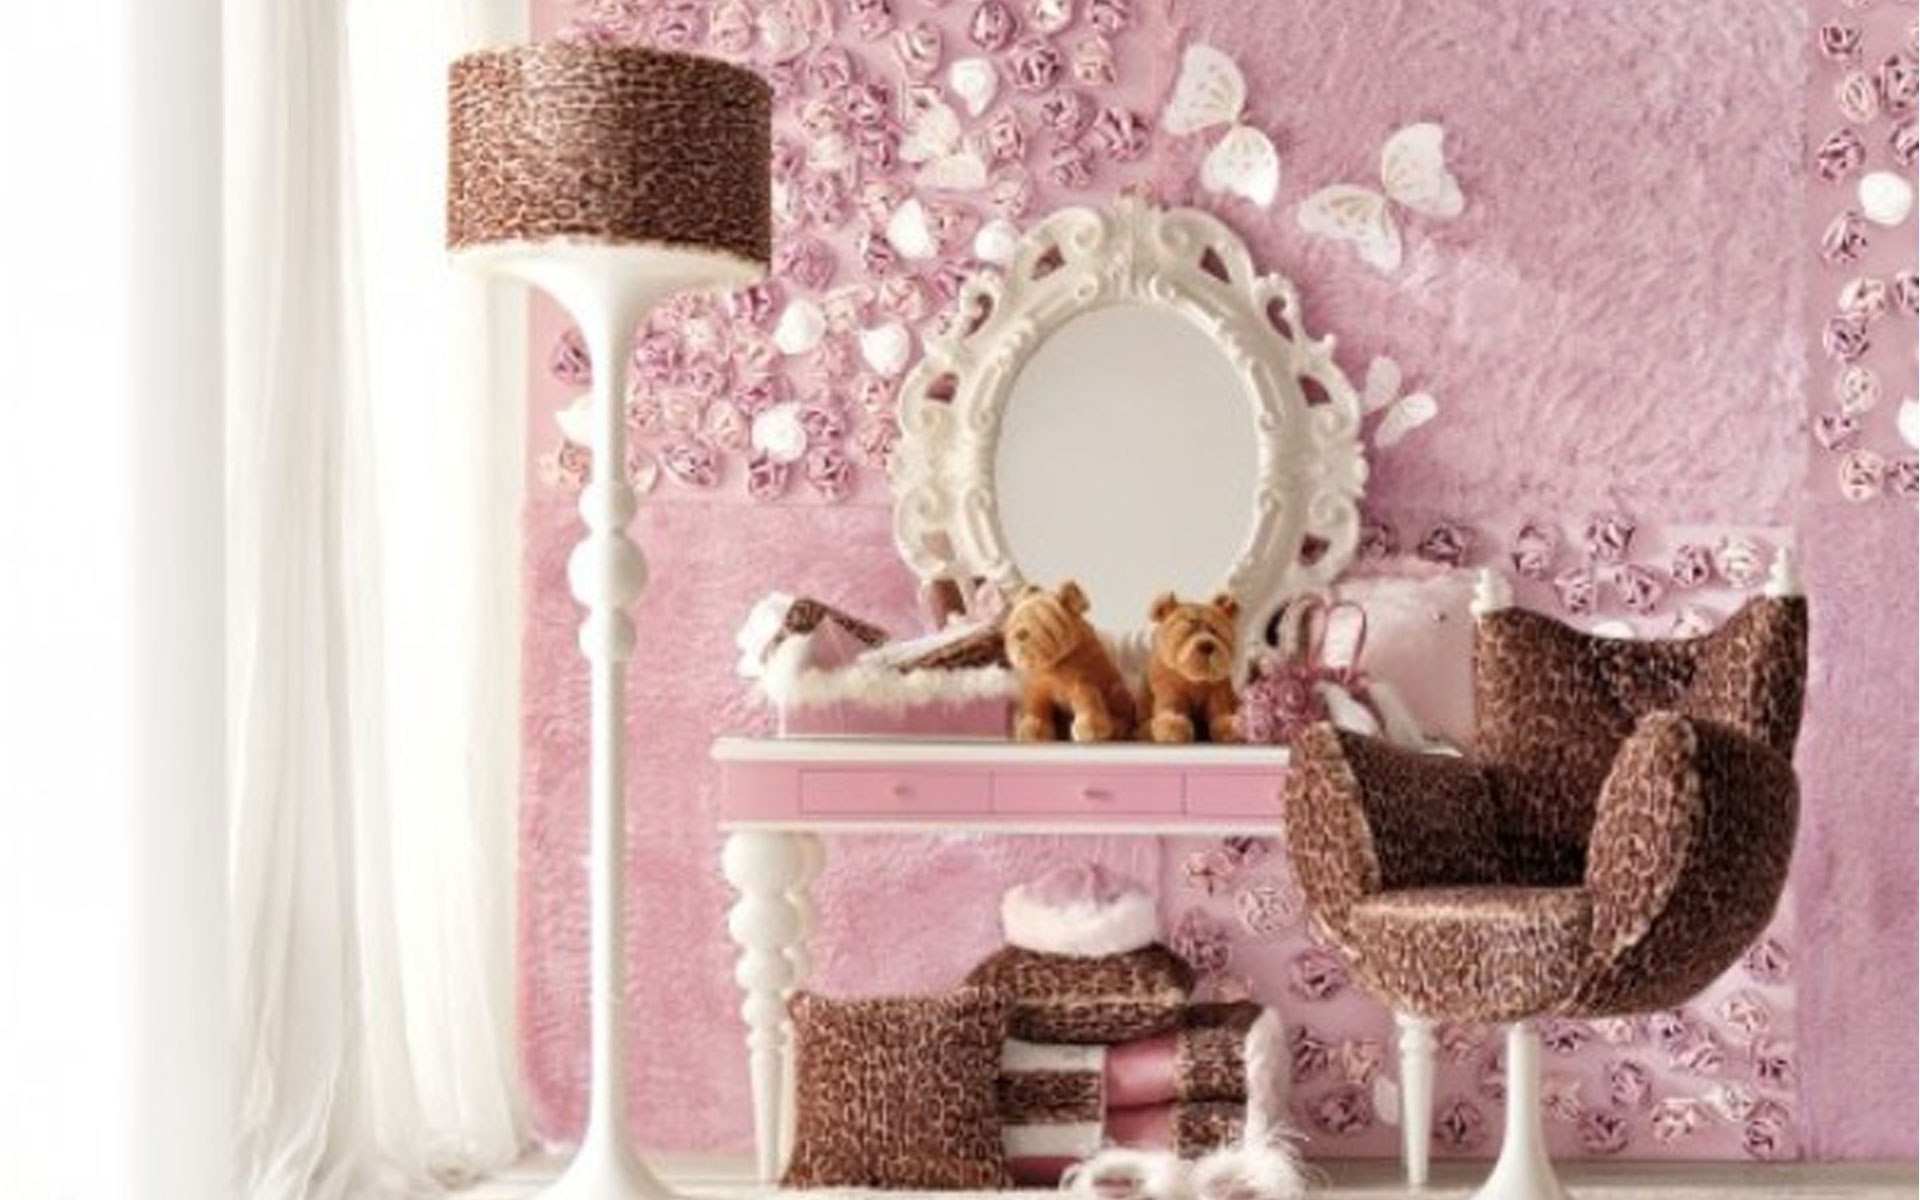 Cute Teenage Wall Decor Www Unique Baby Gear Ideas Com Images And Picture  Ofpink Decoration In …